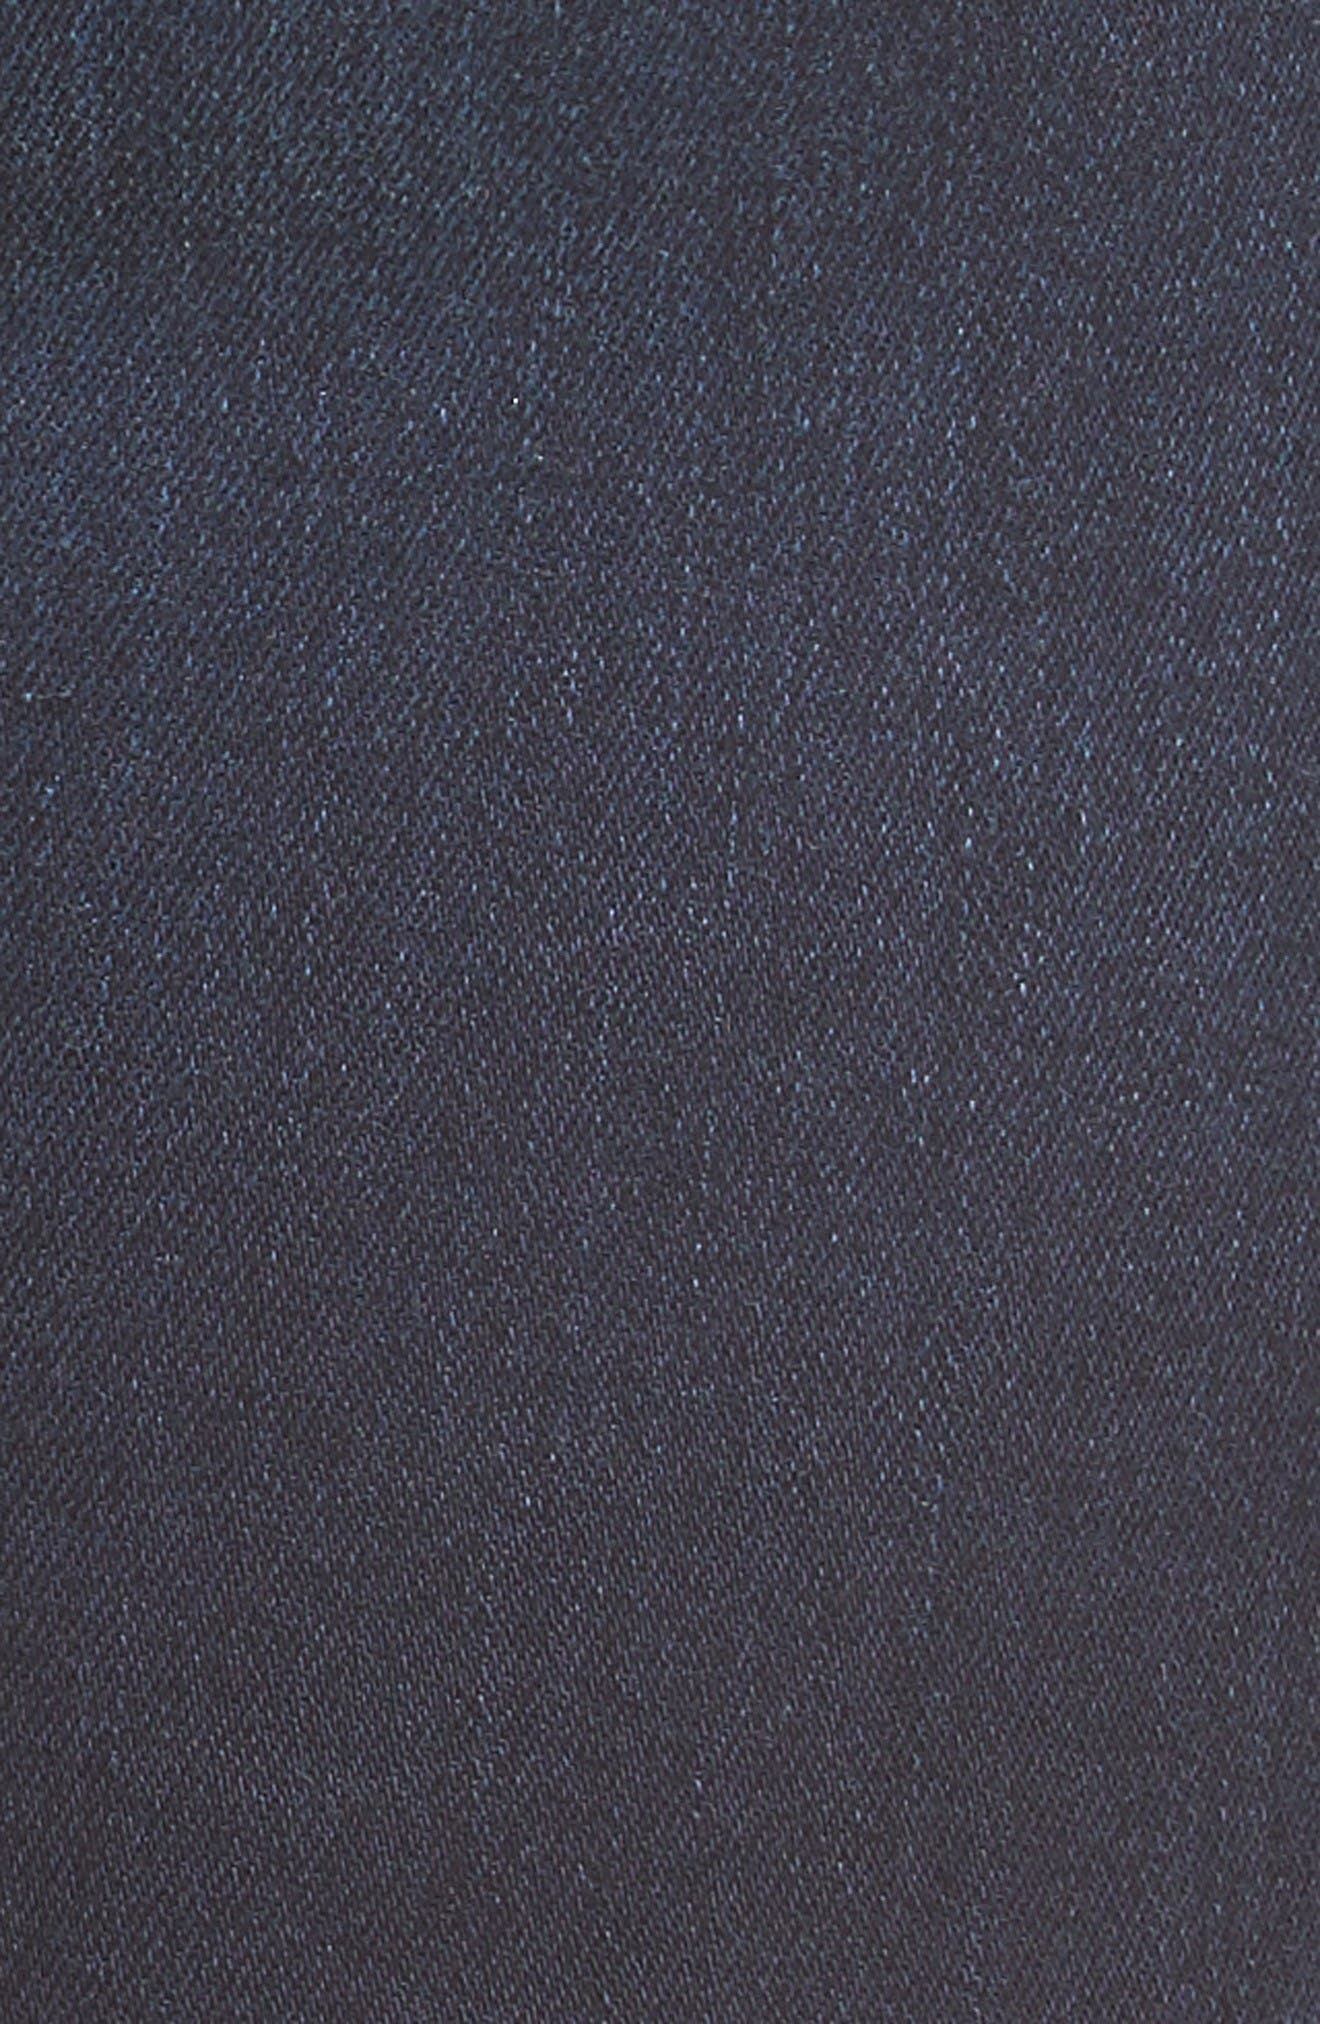 Alternate Image 5  - KUT from the Kloth Diana Stretch Skinny Jeans (Gained) (Regular & Petite)